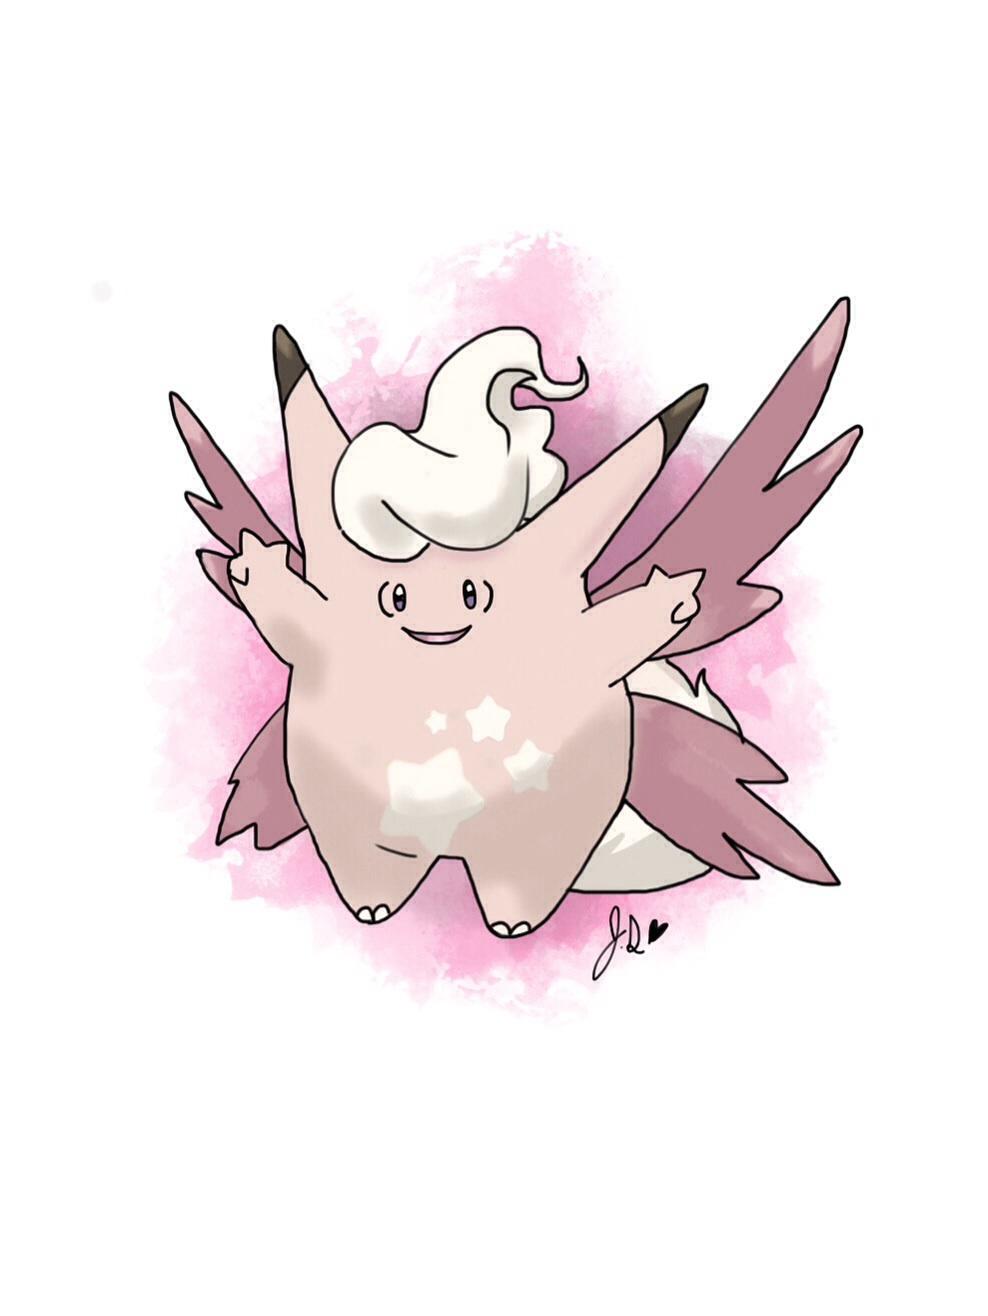 Clefable Clefable new mega